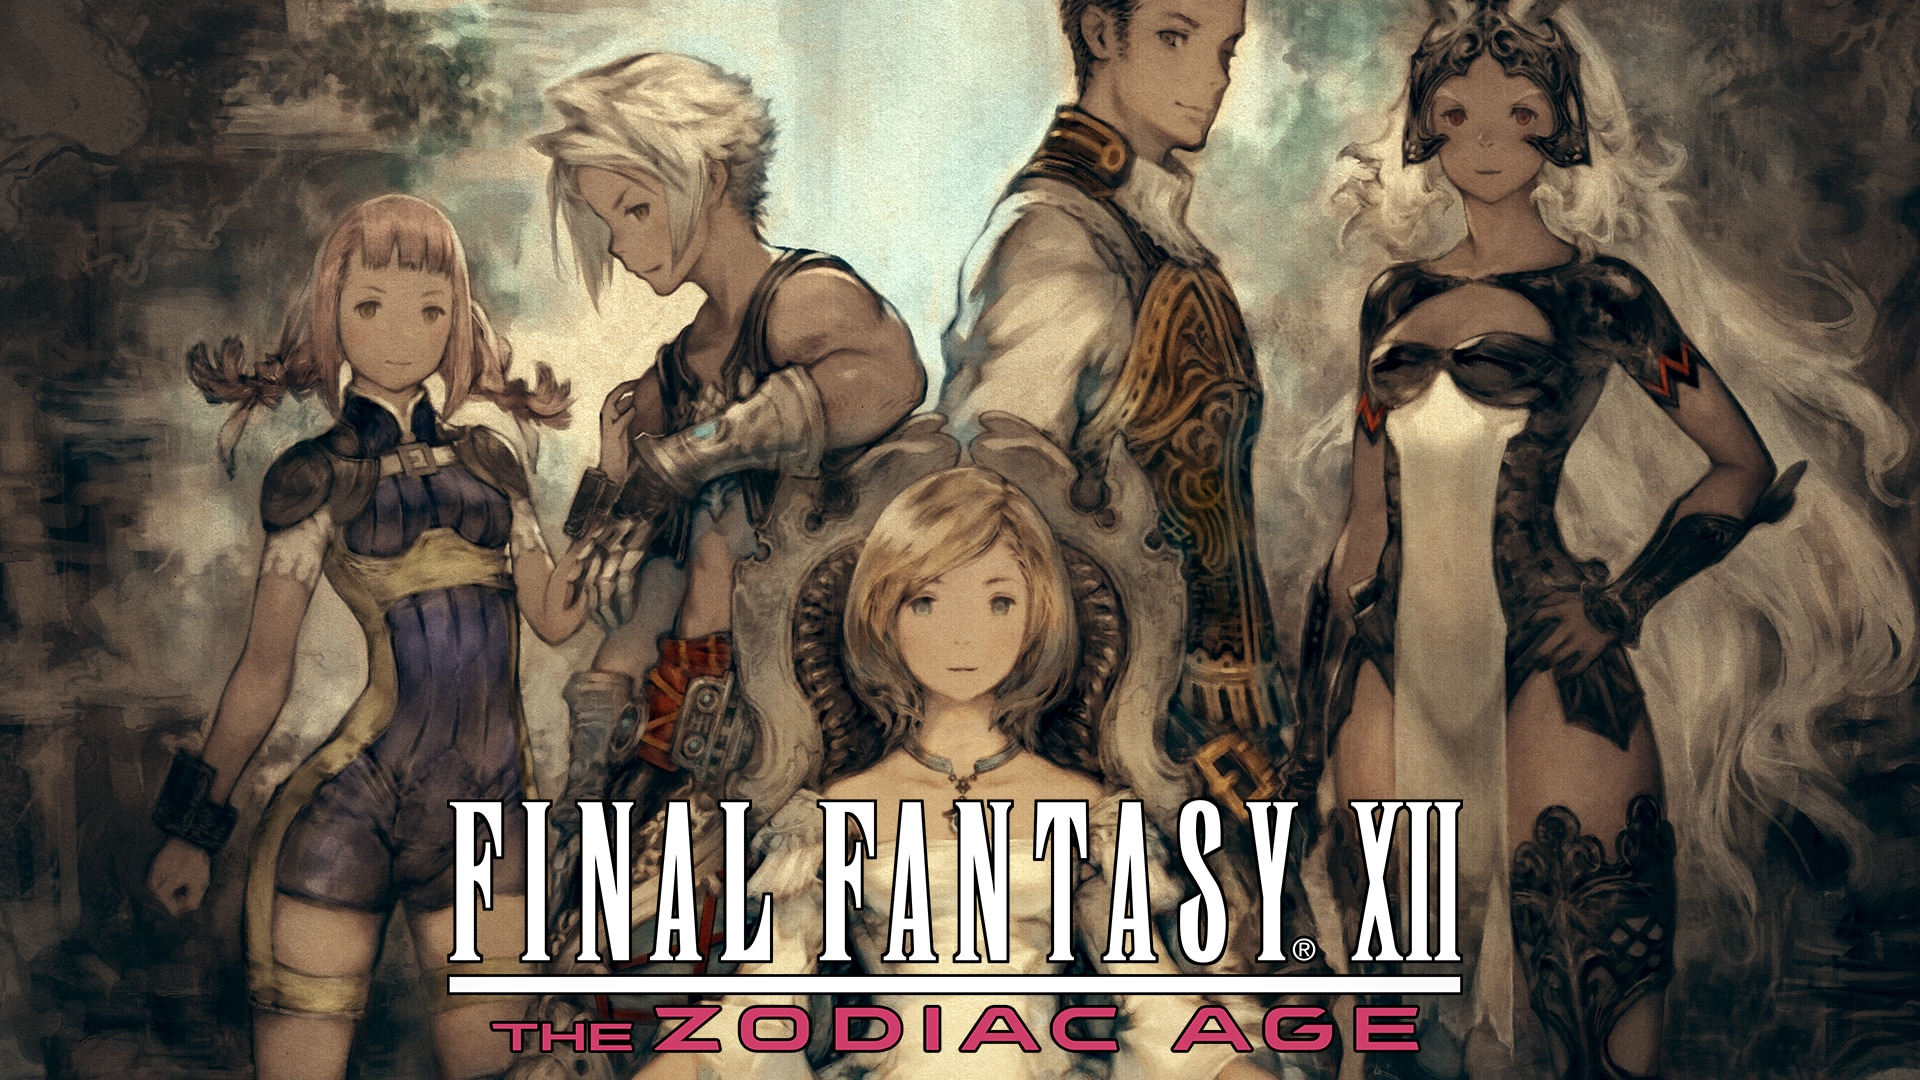 Every final fantasy game ever released